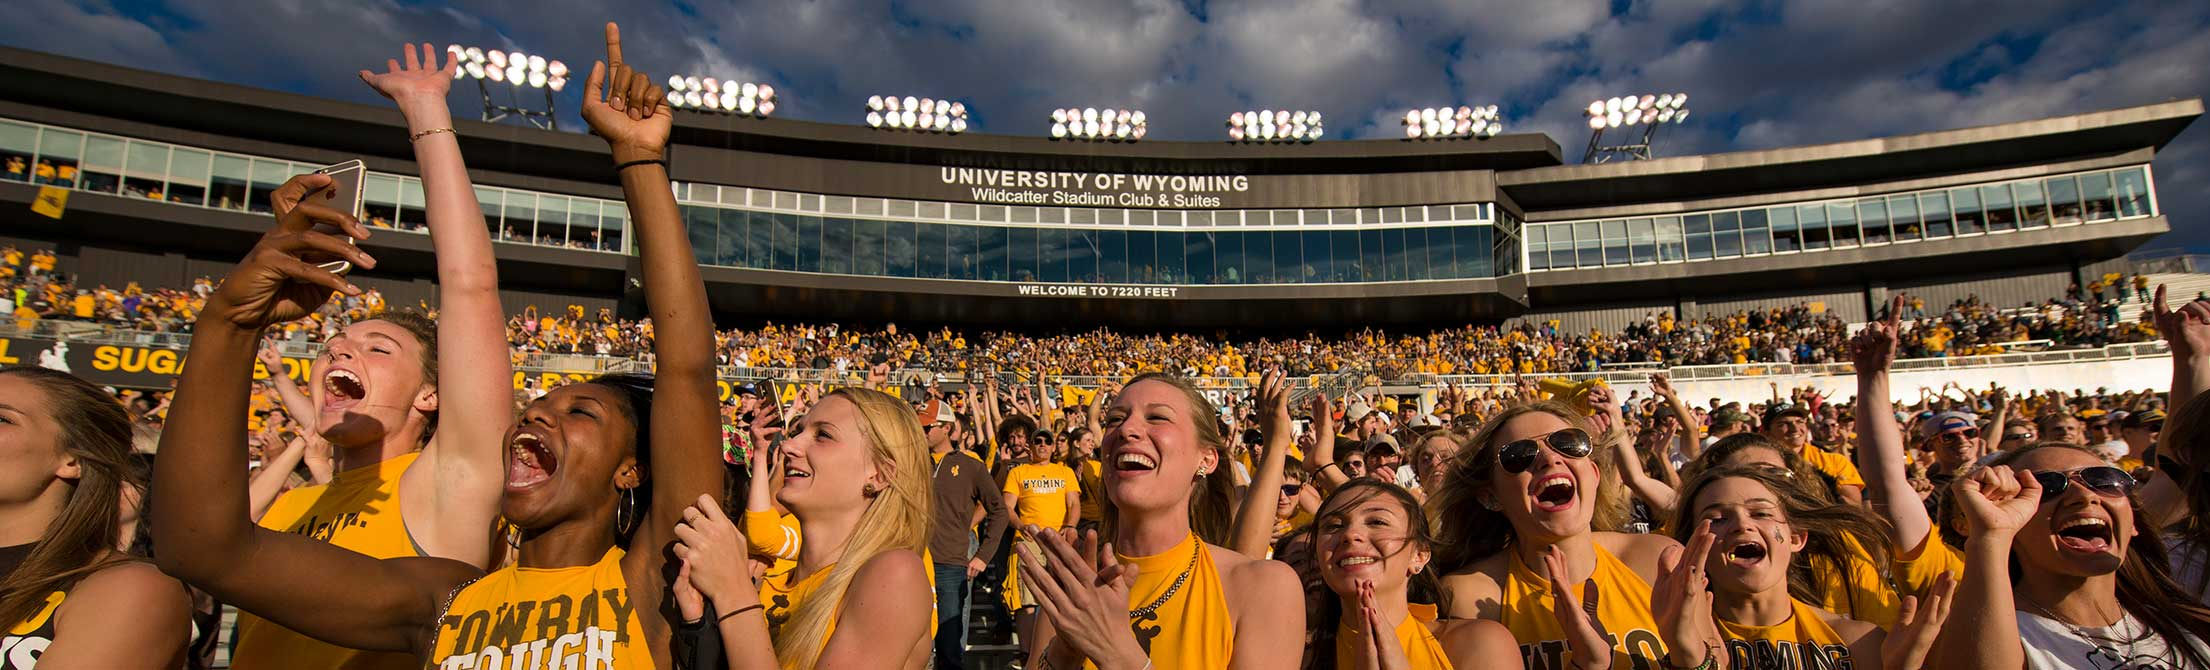 UW students in gold cheering in the football stadium during a game